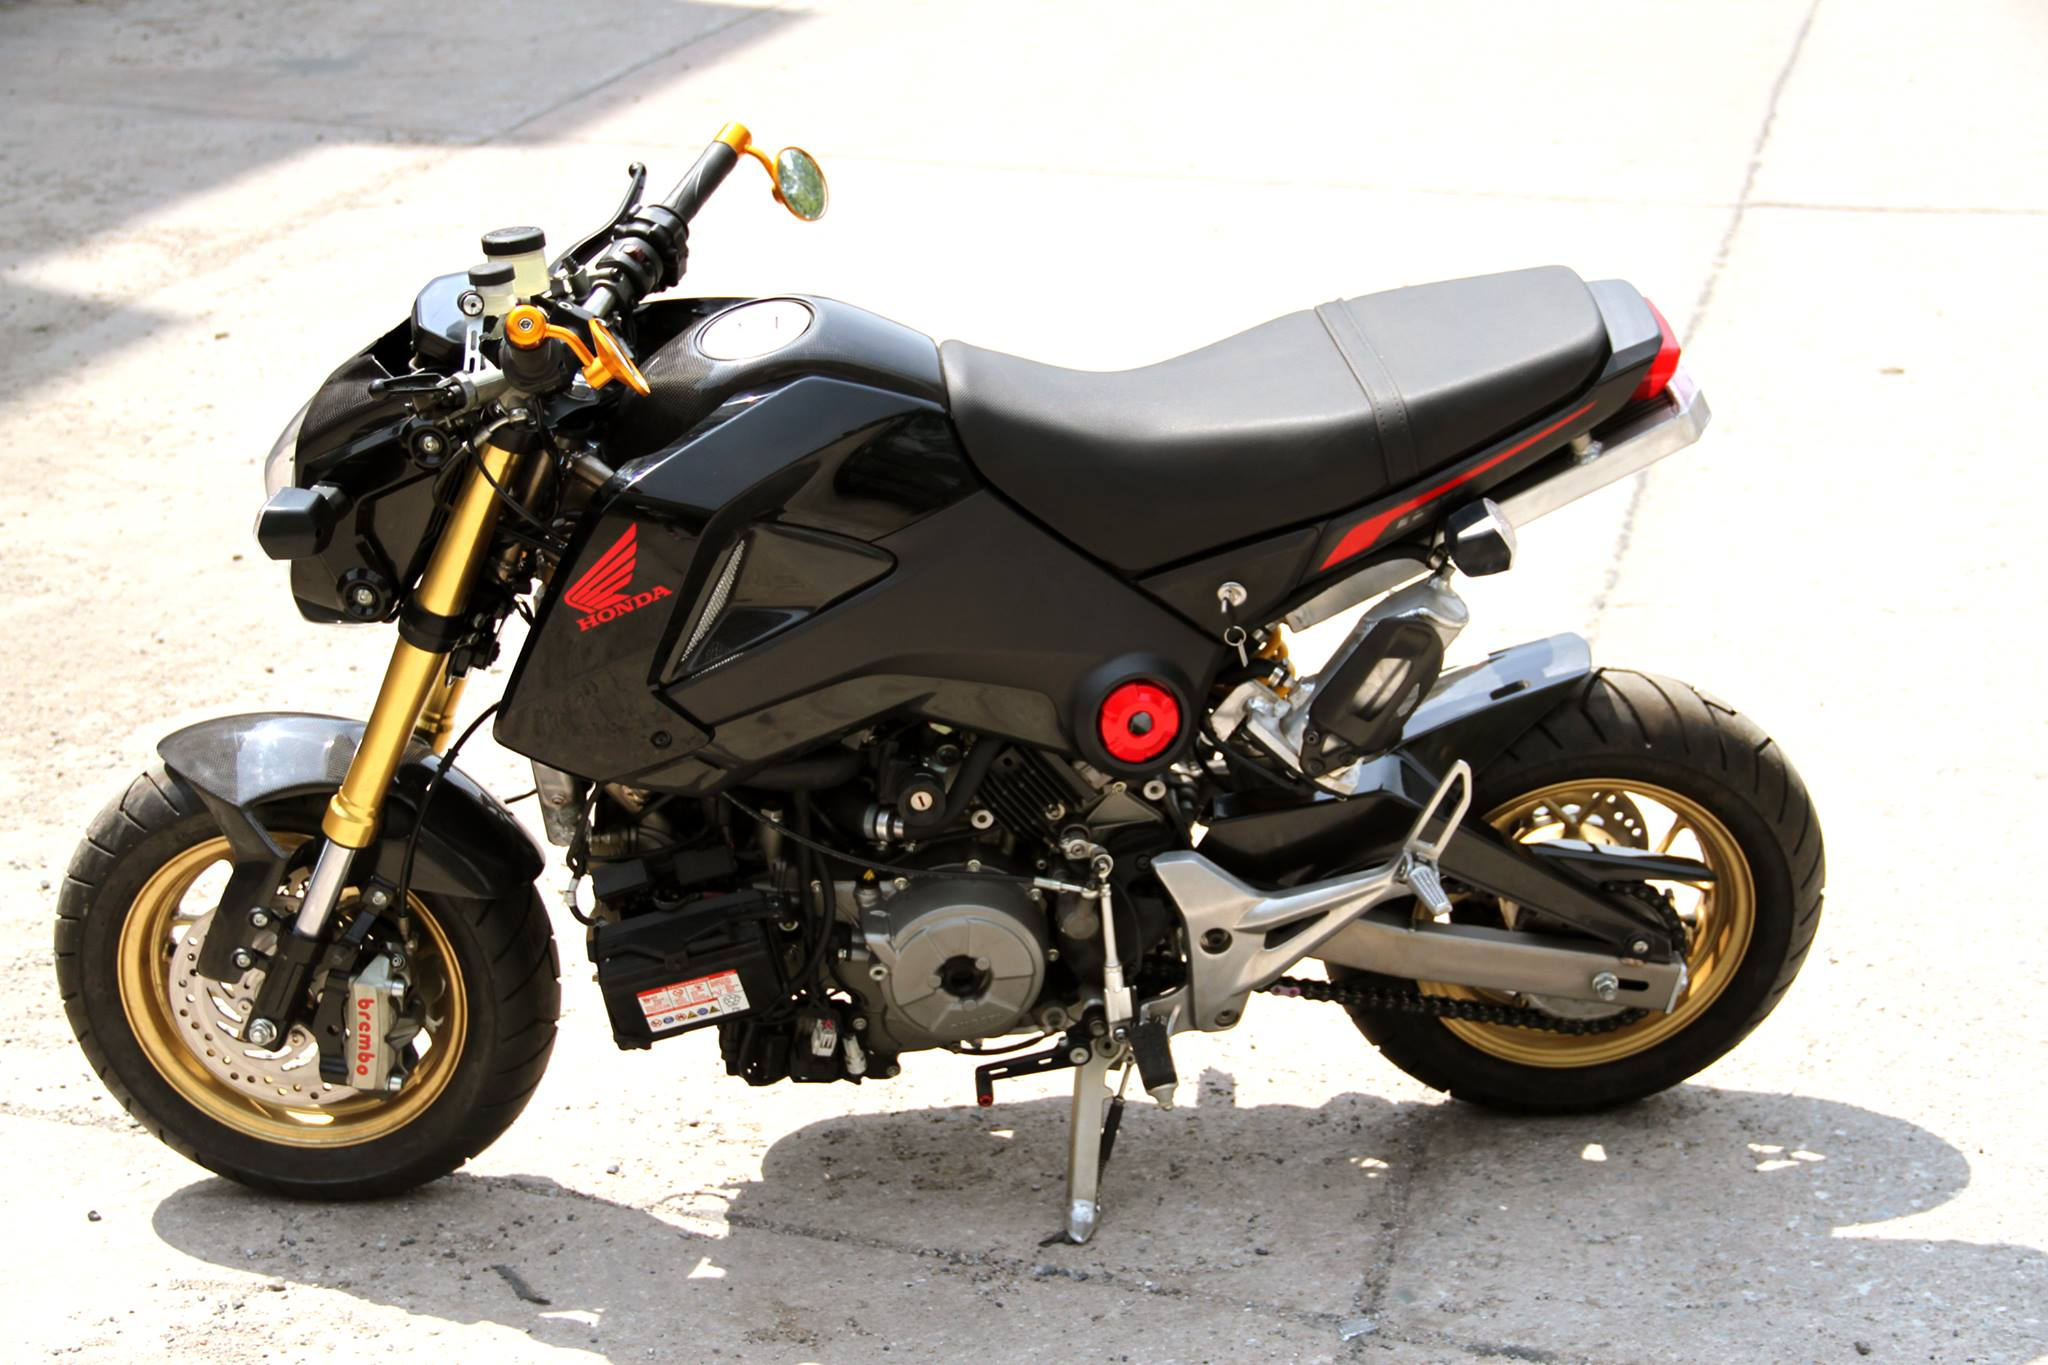 ducati 1199 panigale powered honda grom is as insane as it. Black Bedroom Furniture Sets. Home Design Ideas